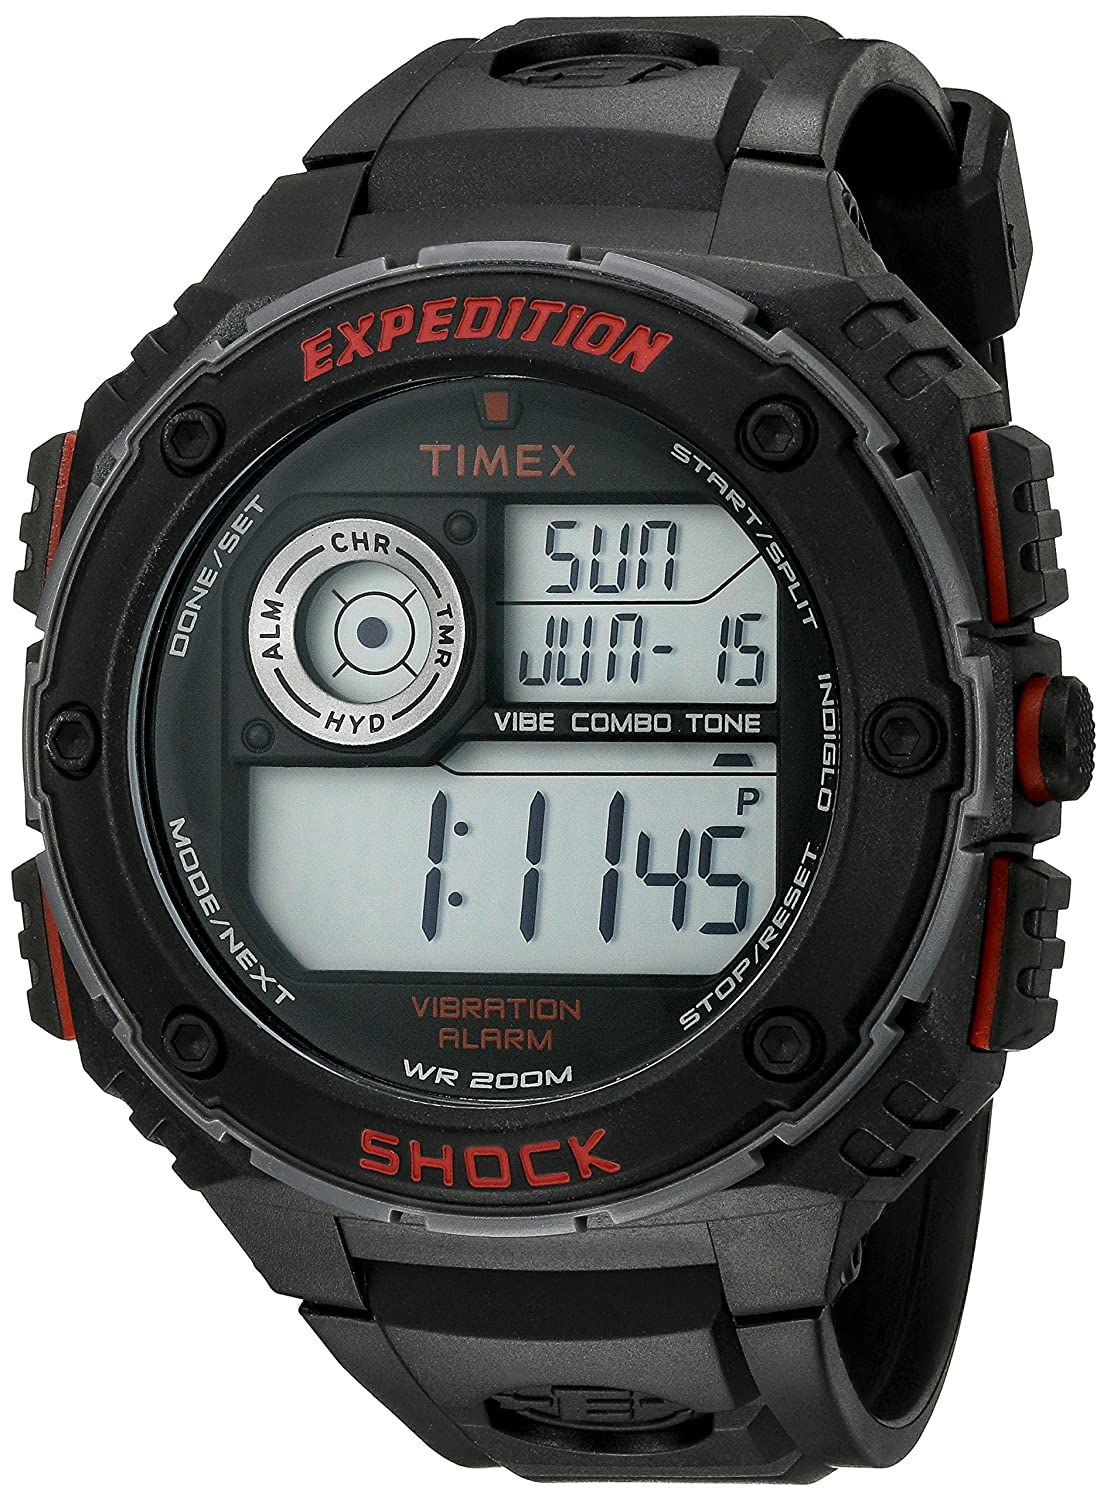 2567a9e56575 Amazon.com  Timex Men s T499839J Expedition Vibe Shock Watch with Black  Band  Timex  Watches